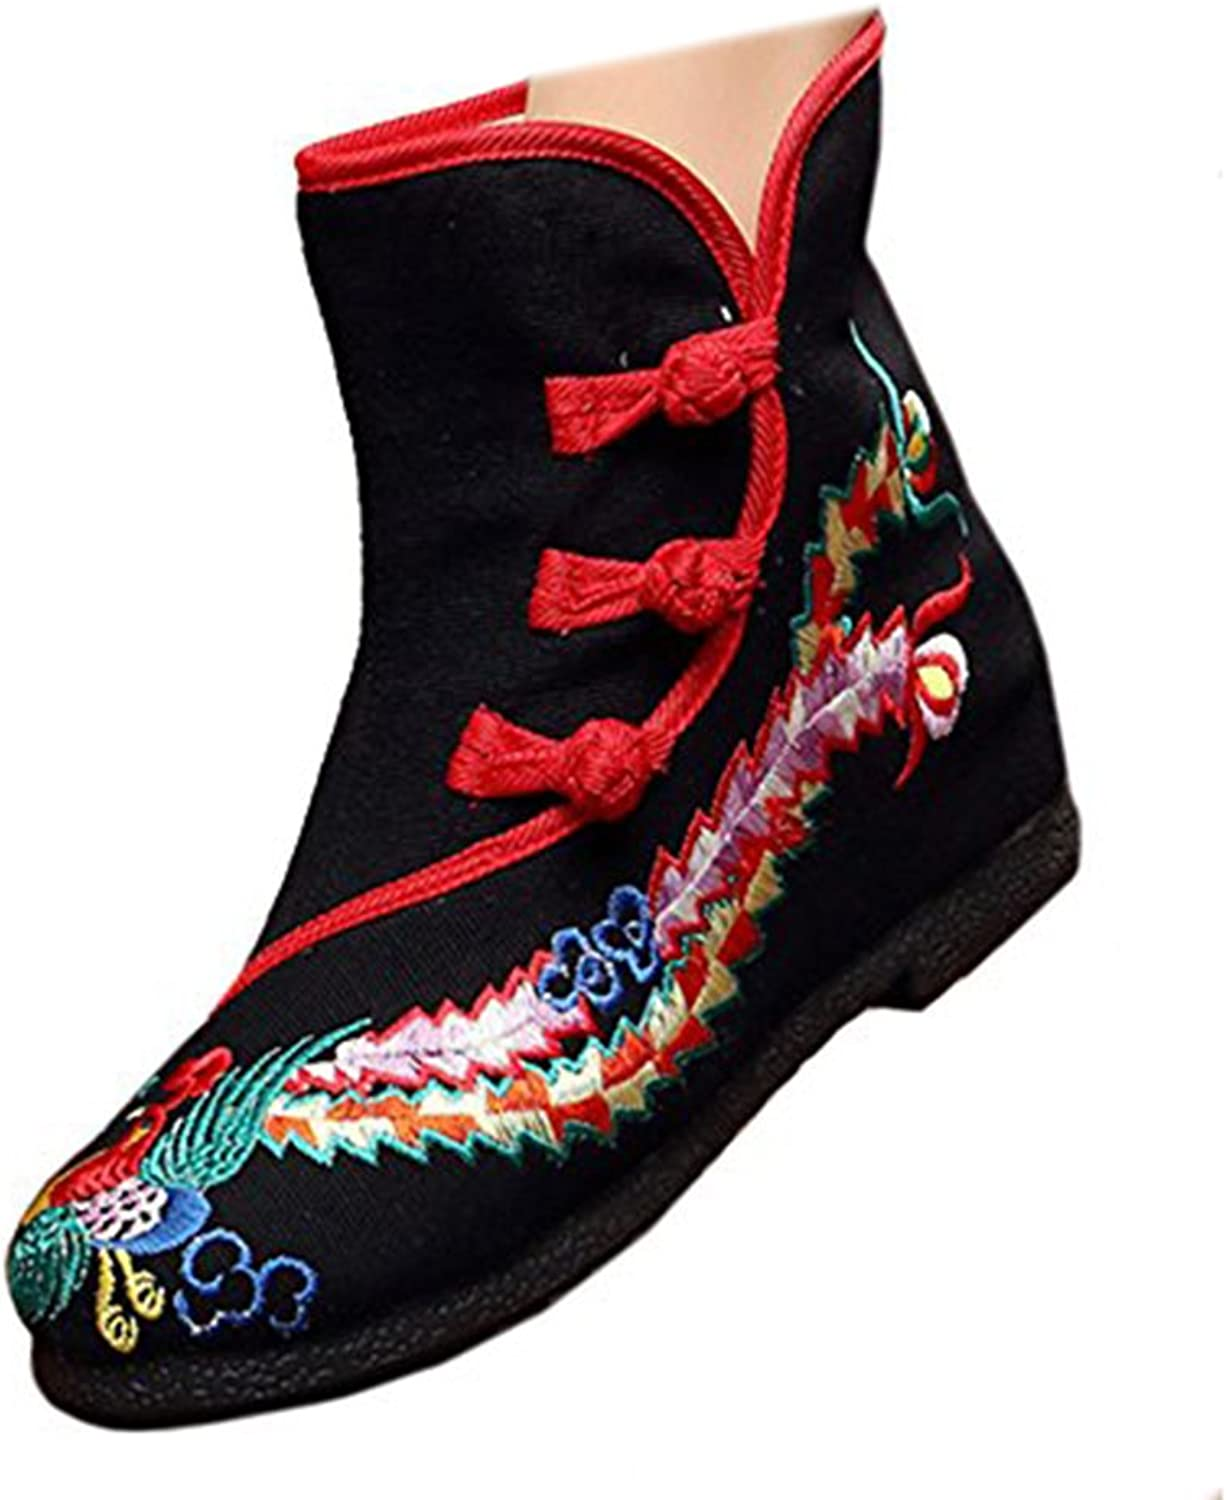 Shenghuajie Vintage Beijing Cloth shoes Embroidered Boots 12-03 Black with Cotton